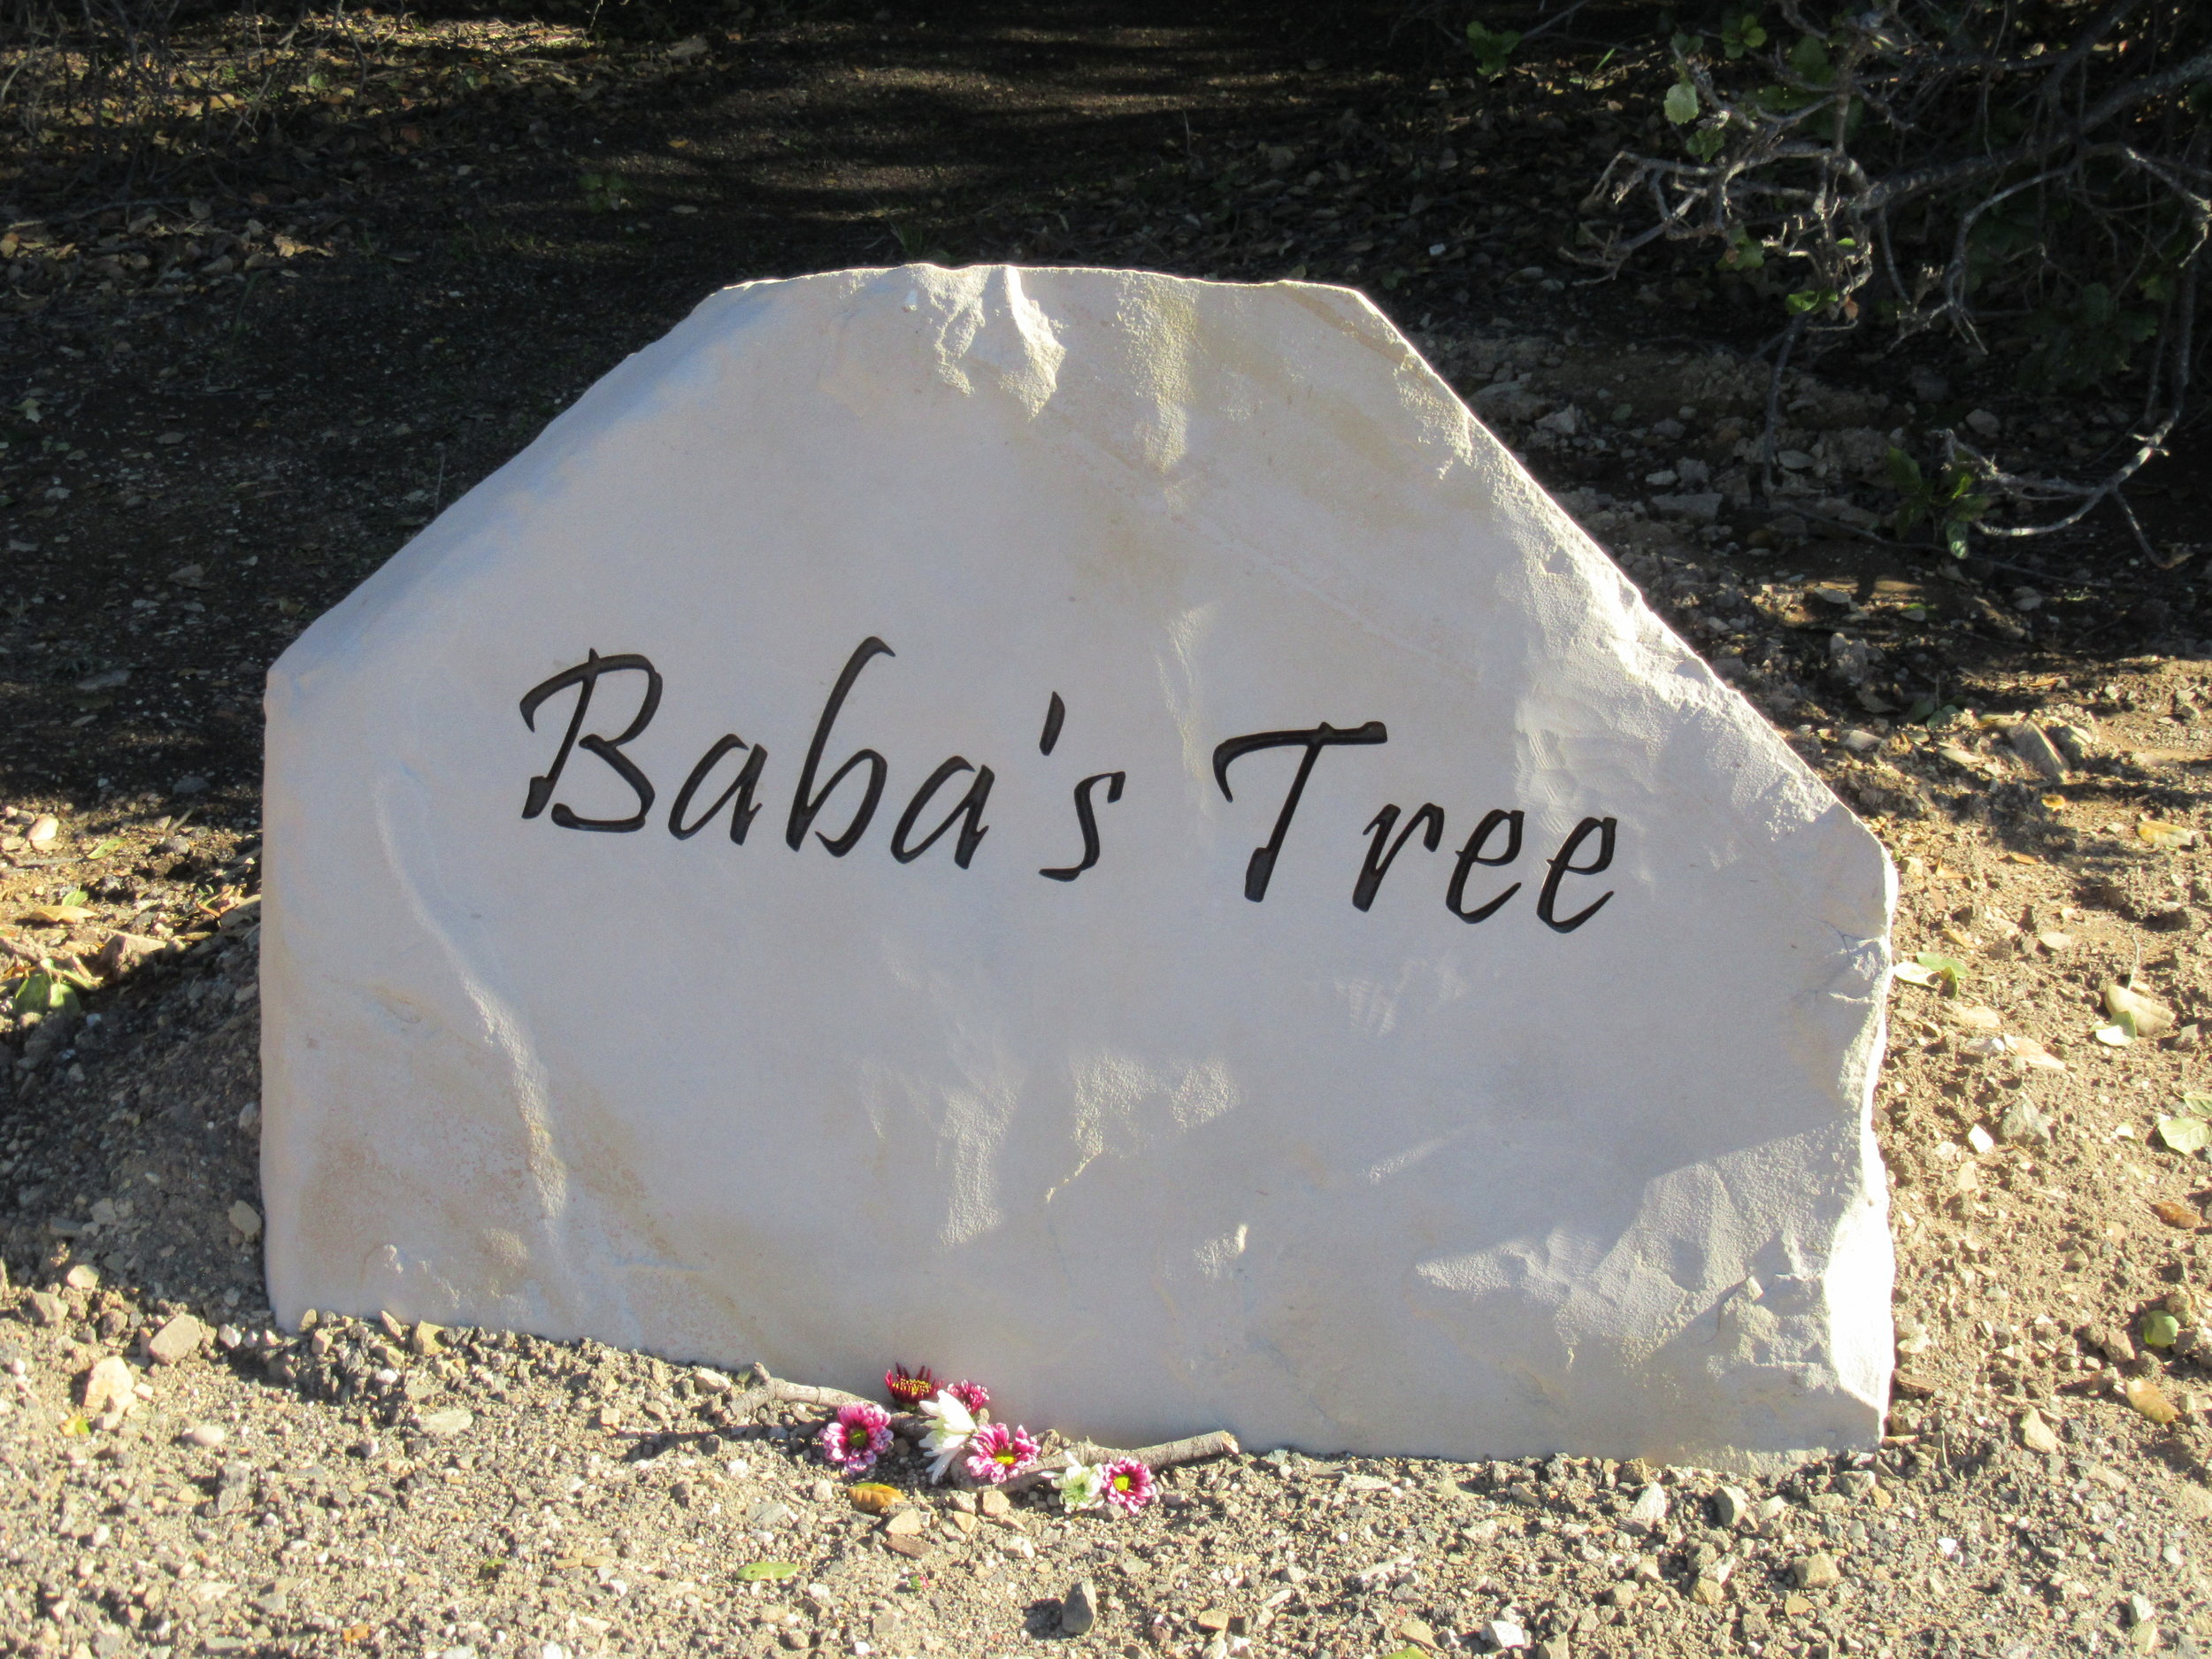 BABA'S TREE at Meher Mount is a touchstone for most visitors who often find inspiration, solace and rejuvenation under the Tree. (Photo: Margaret Magnus, 2017)